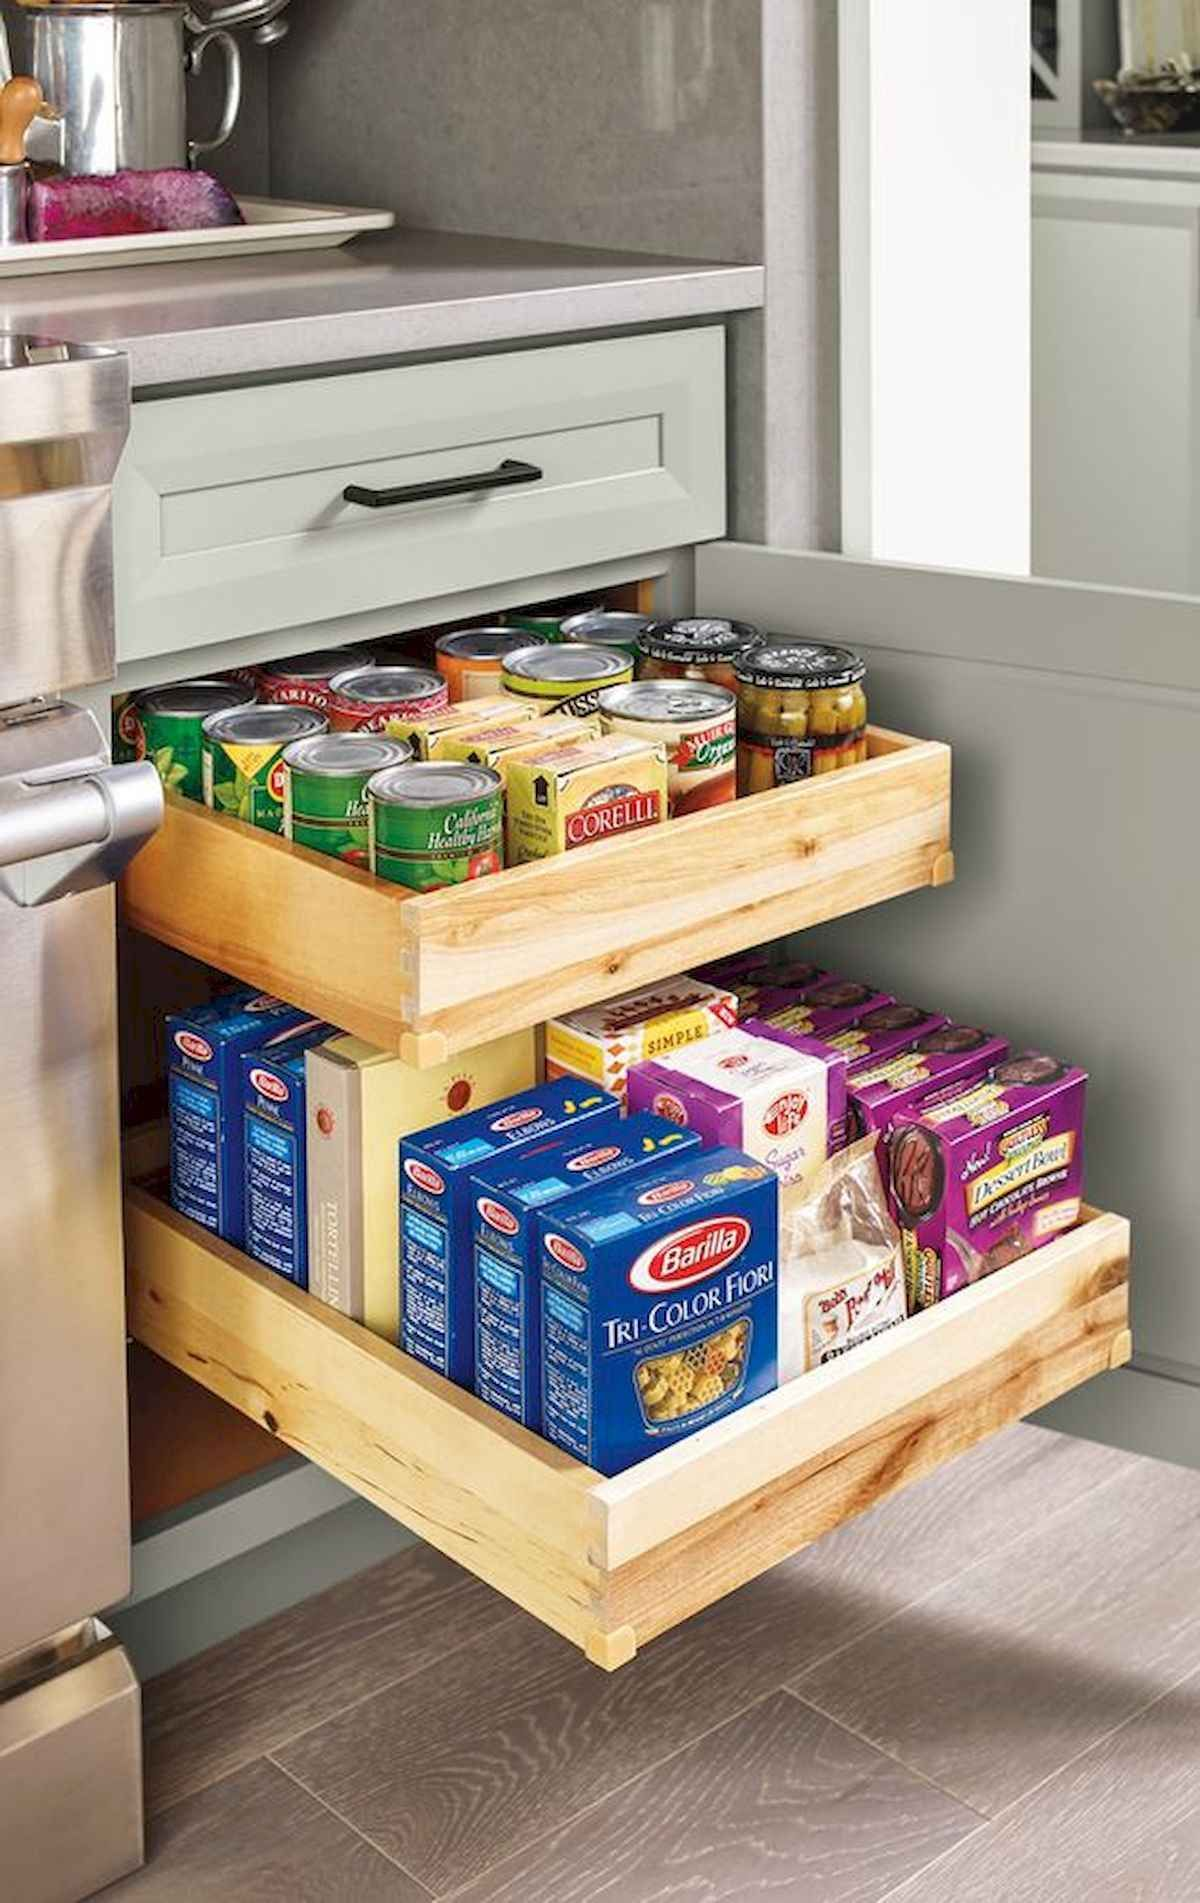 Kitchen Cabinet Organization Kitchen Cabinet Organizers Corner And Pull Out Organizer In 2020 Kitchen Remodel Small Diy Kitchen Storage Small Kitchen Organization